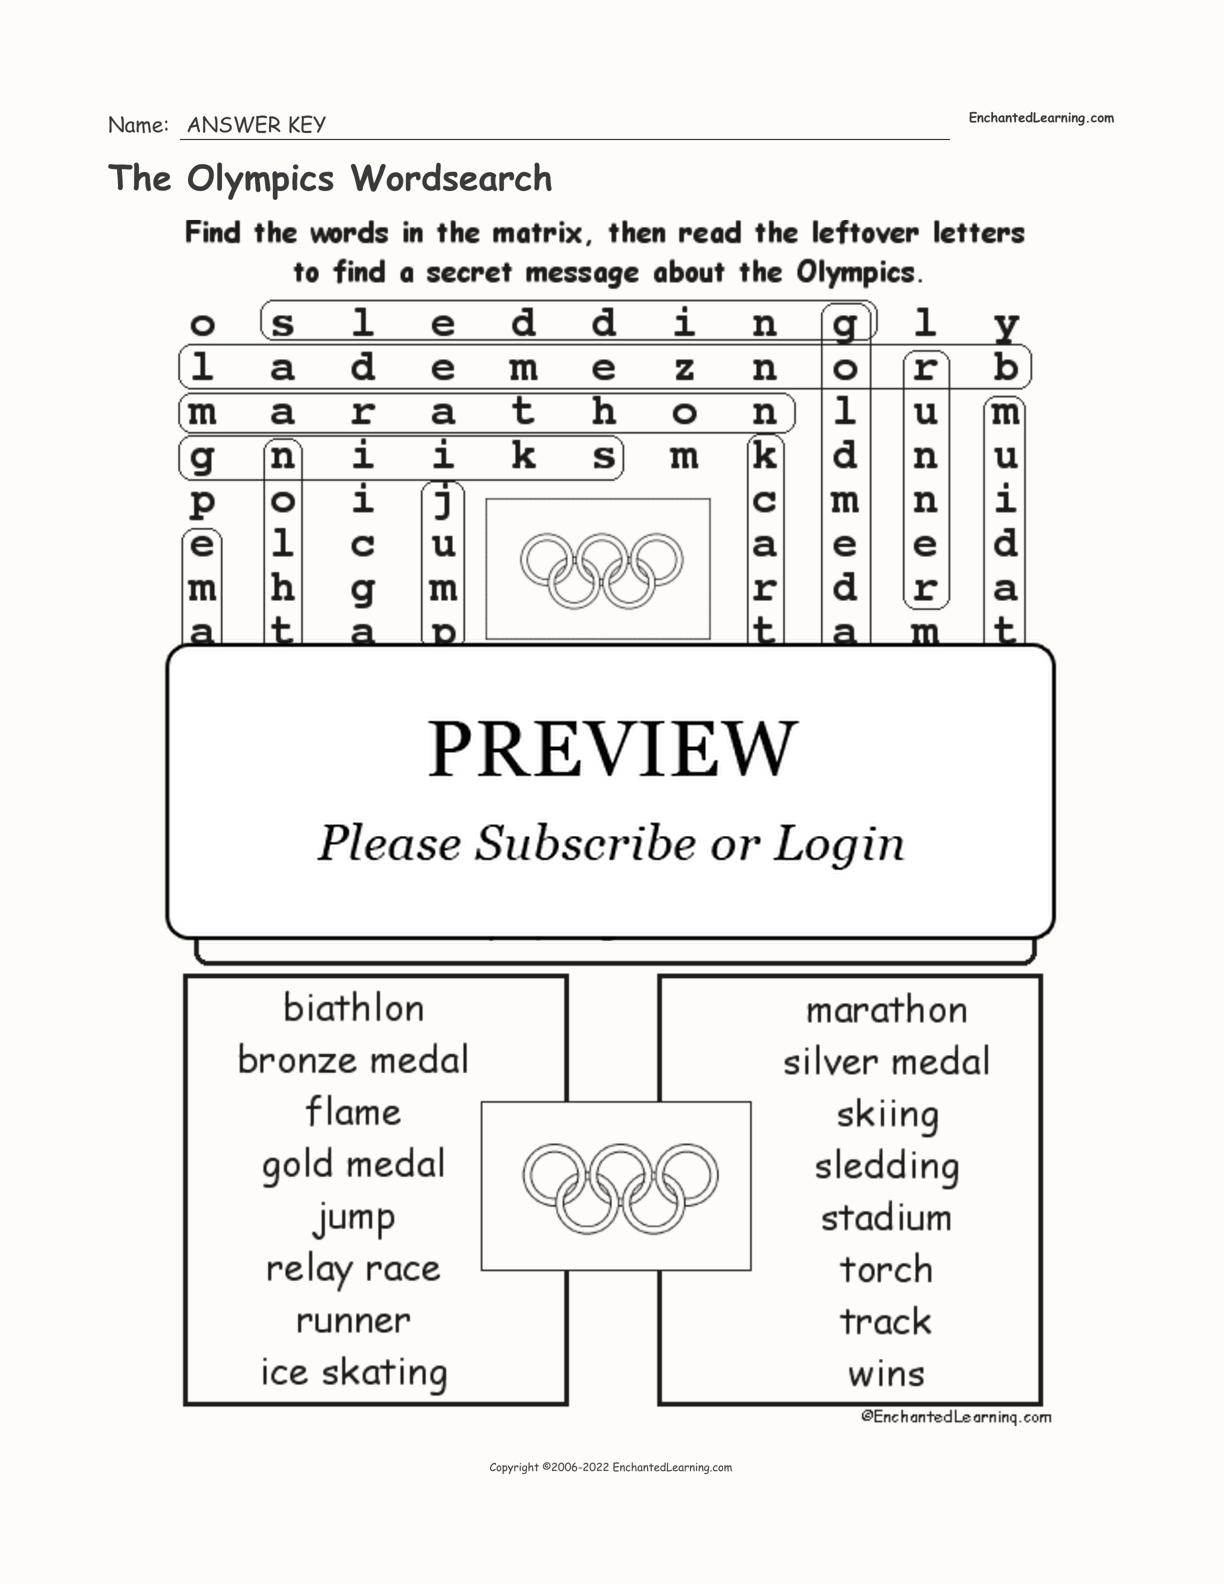 The Olympics Wordsearch